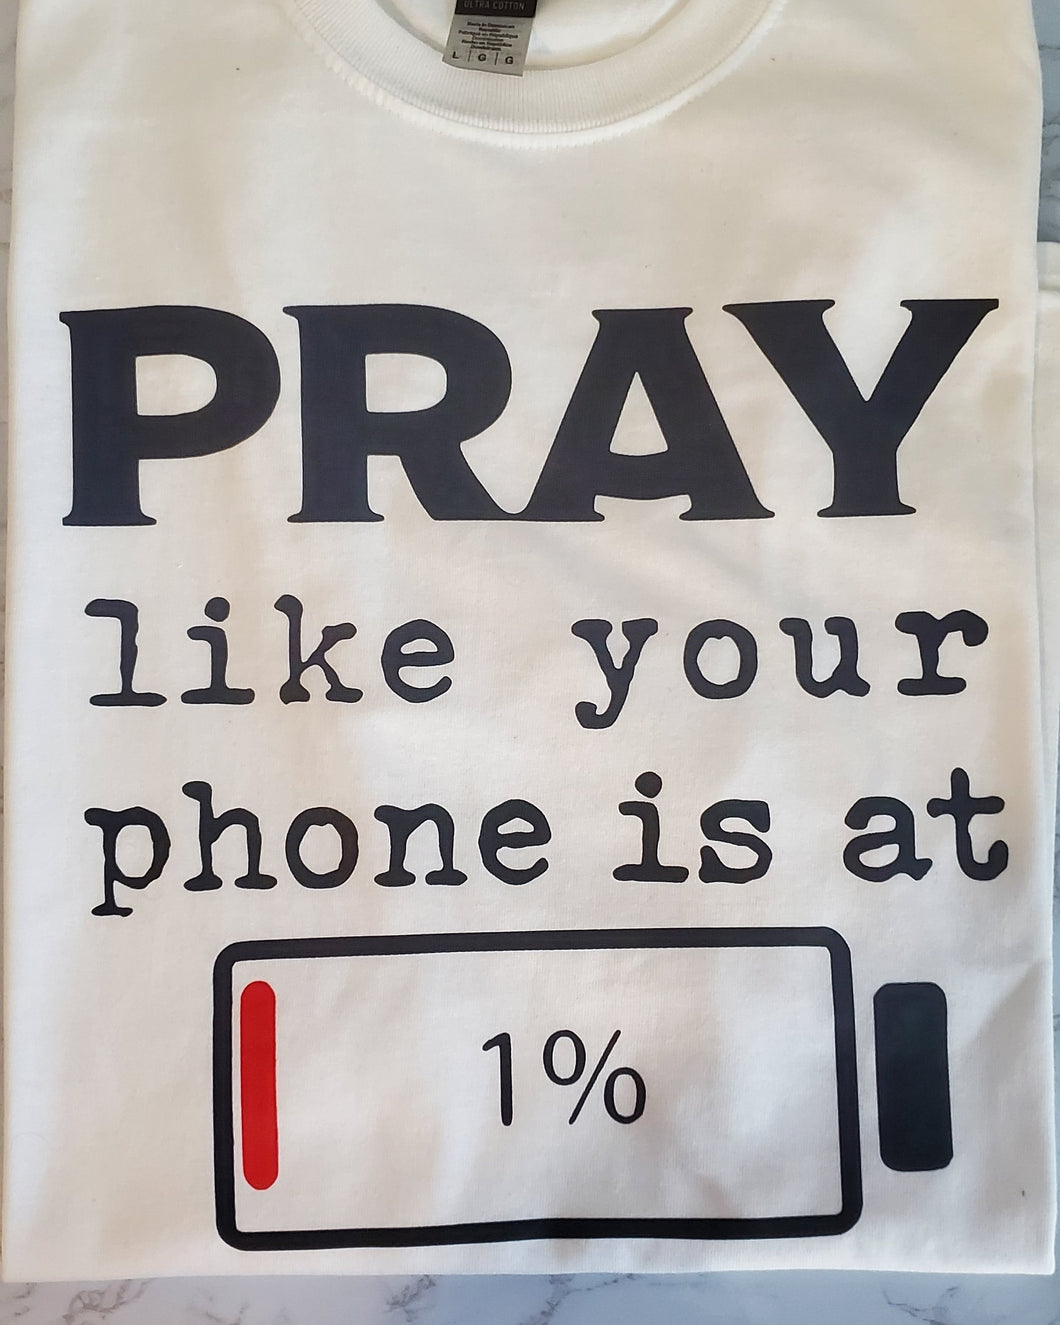 Pray like your phone is on 1% T- shirt